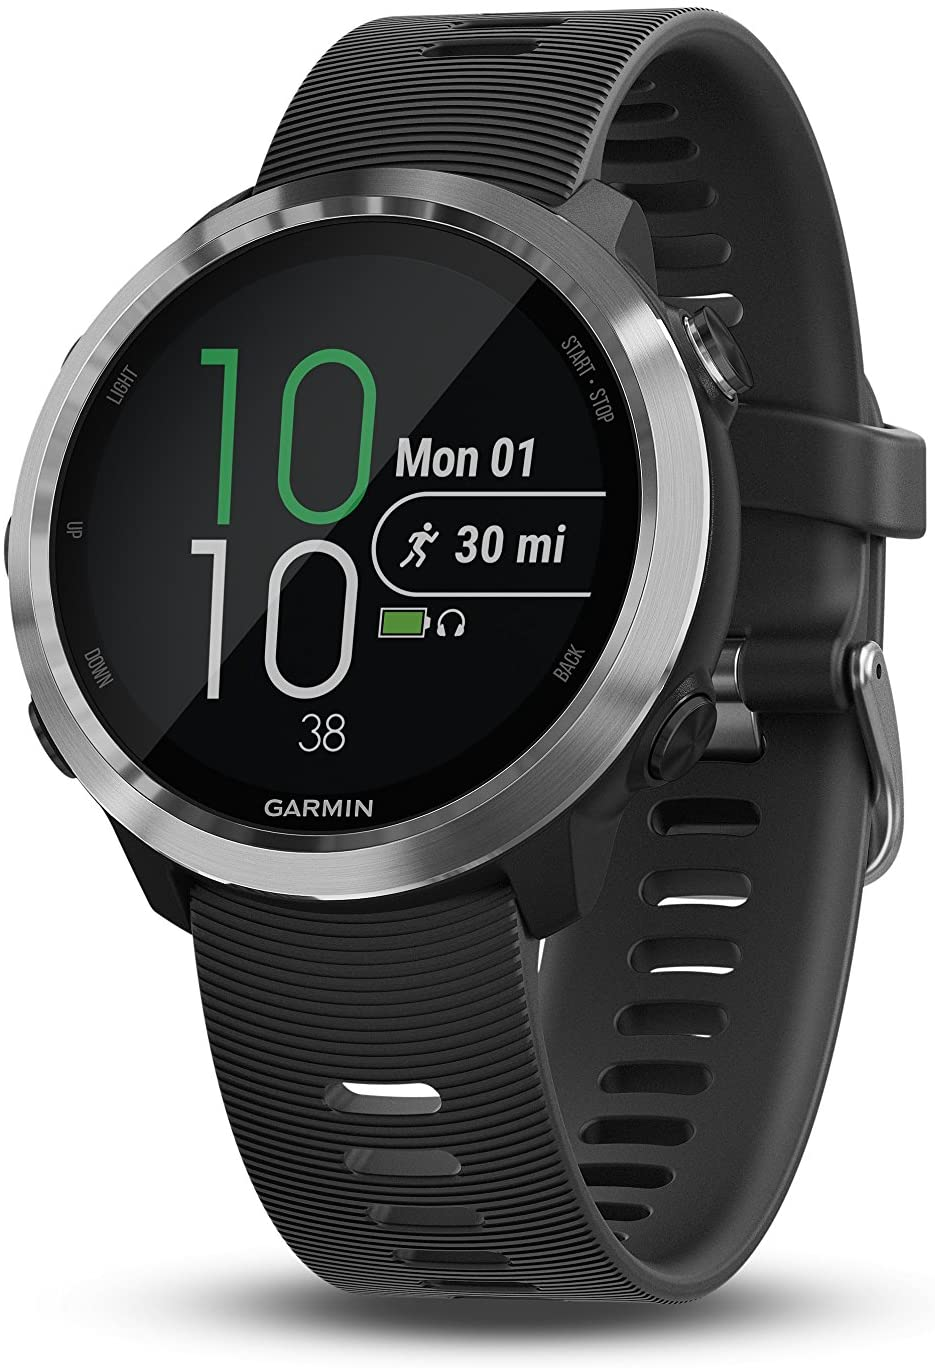 Garmin 010-01863-00 Forerunner 645, GPS Running Watch with Pay Contactless Payments and Wrist-Based Heart Rate, Black, 1.2